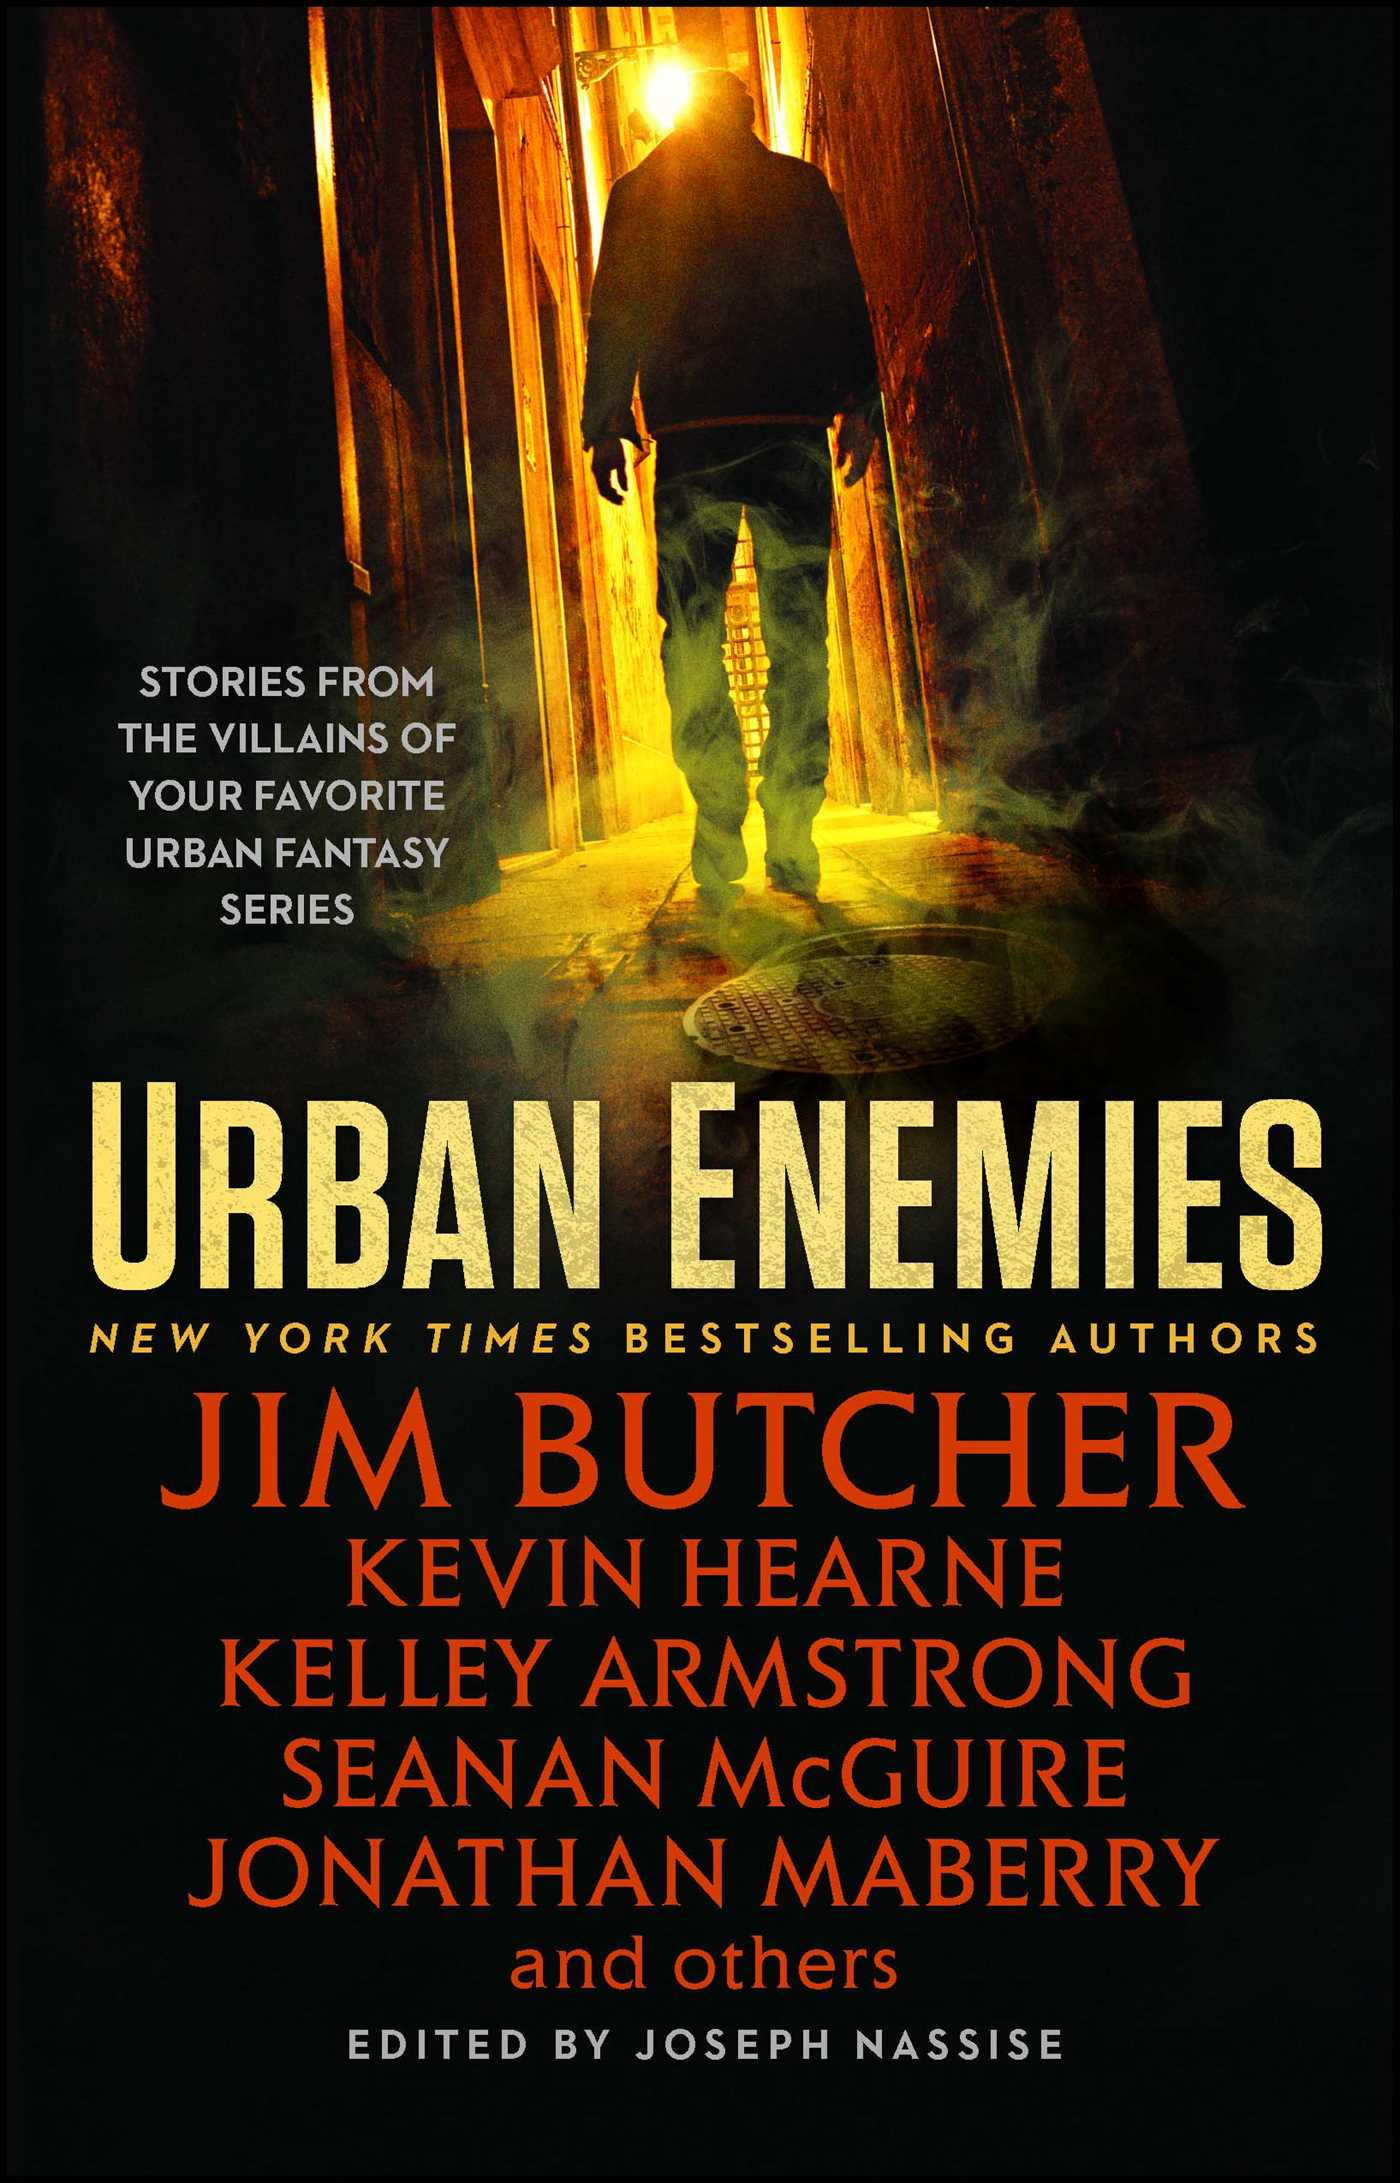 Image result for urban enemies book cover